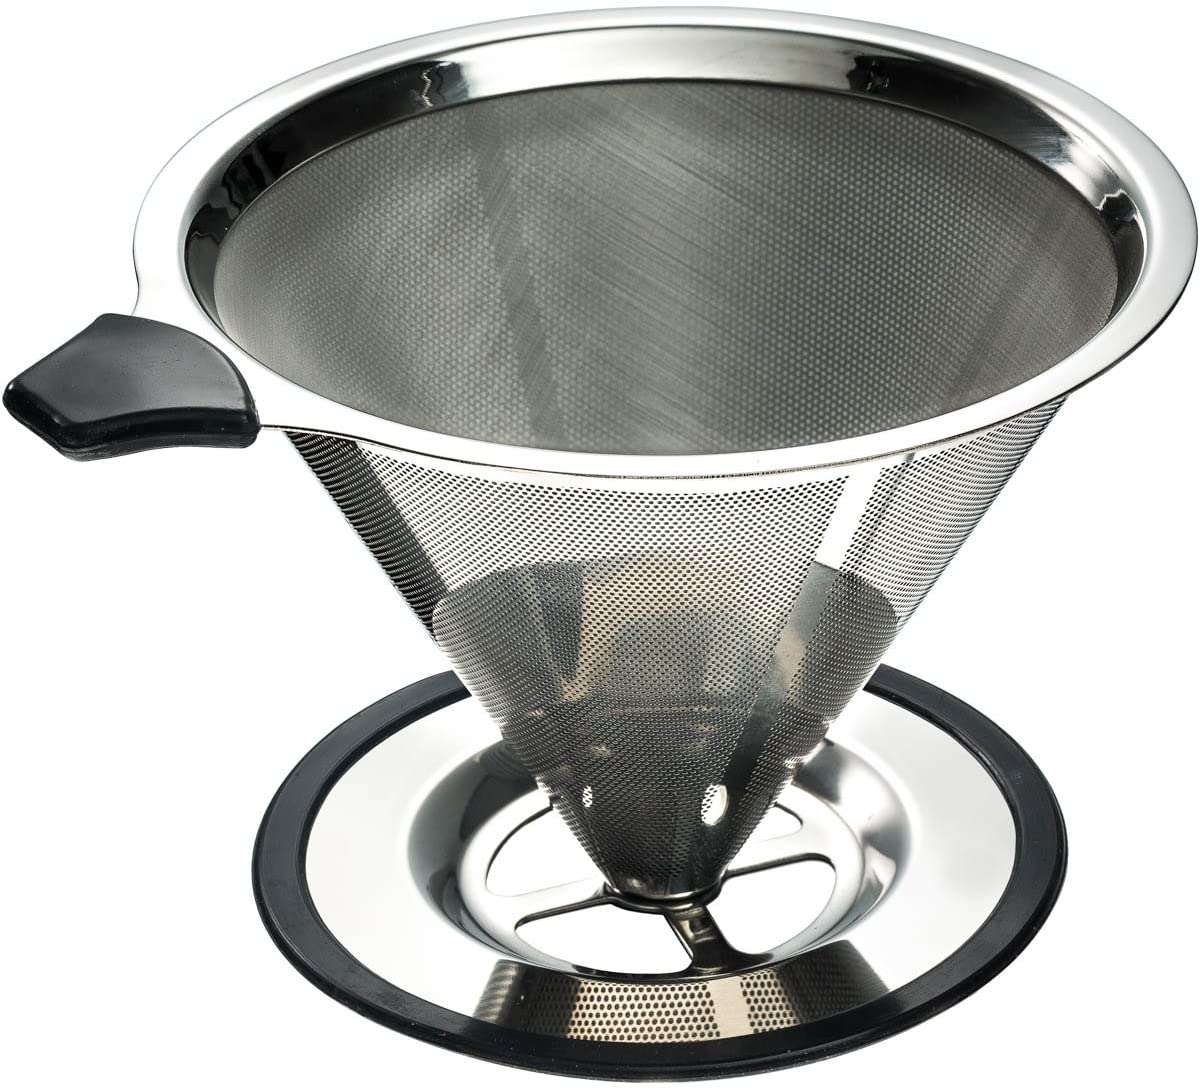 Yitelle Stainless Steel Pour Over Coffee Cone Dripper